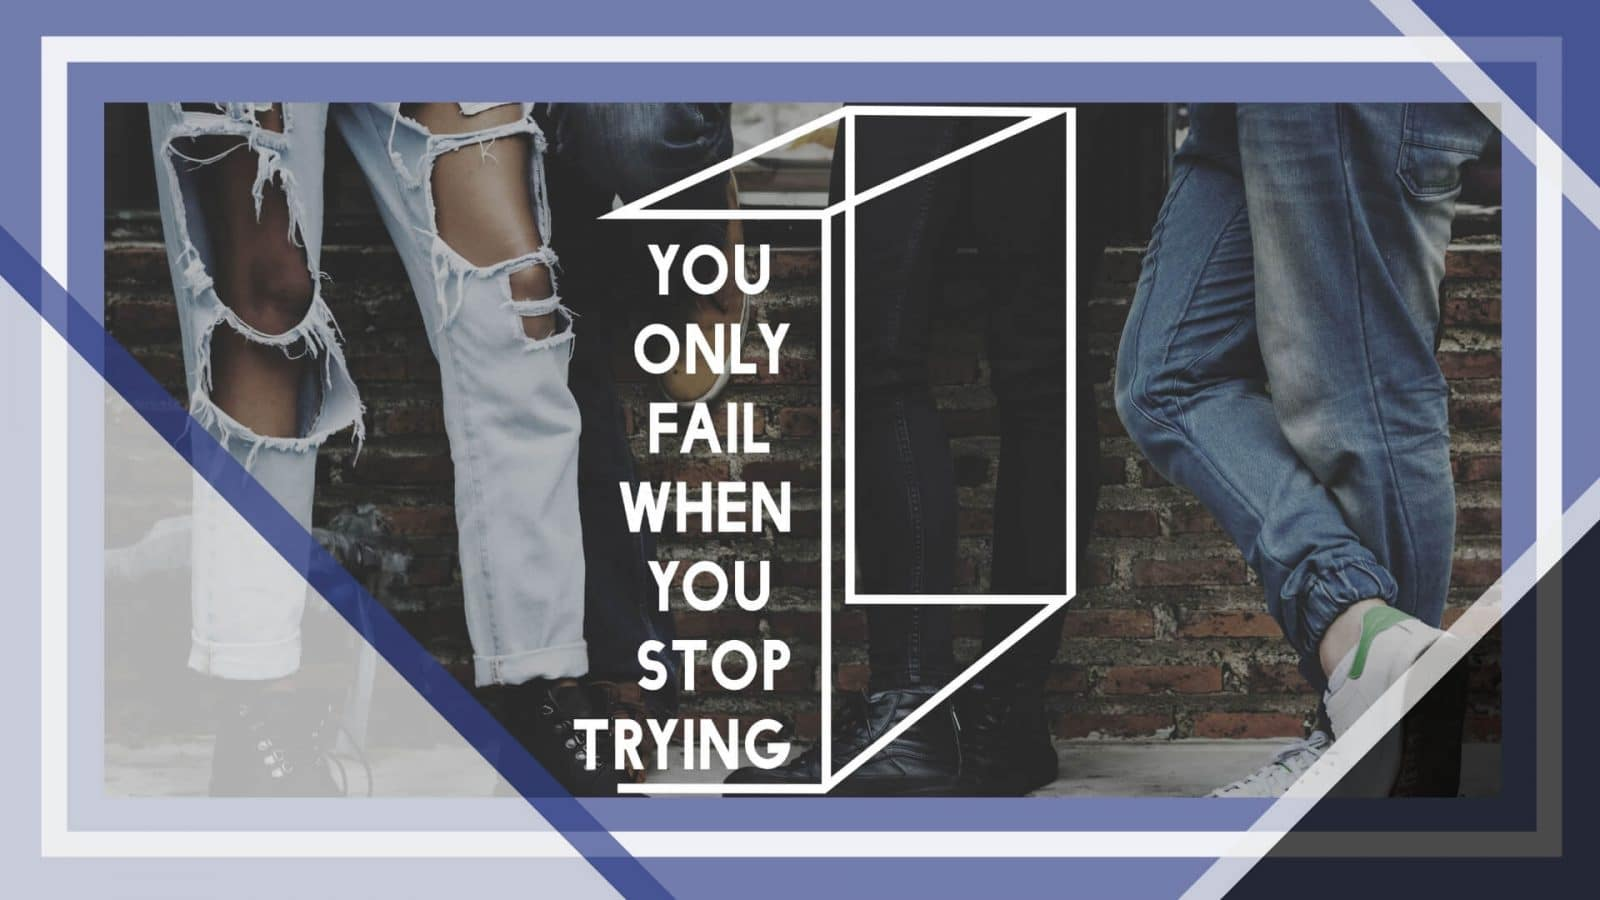 Image of You only fail when you stop trying